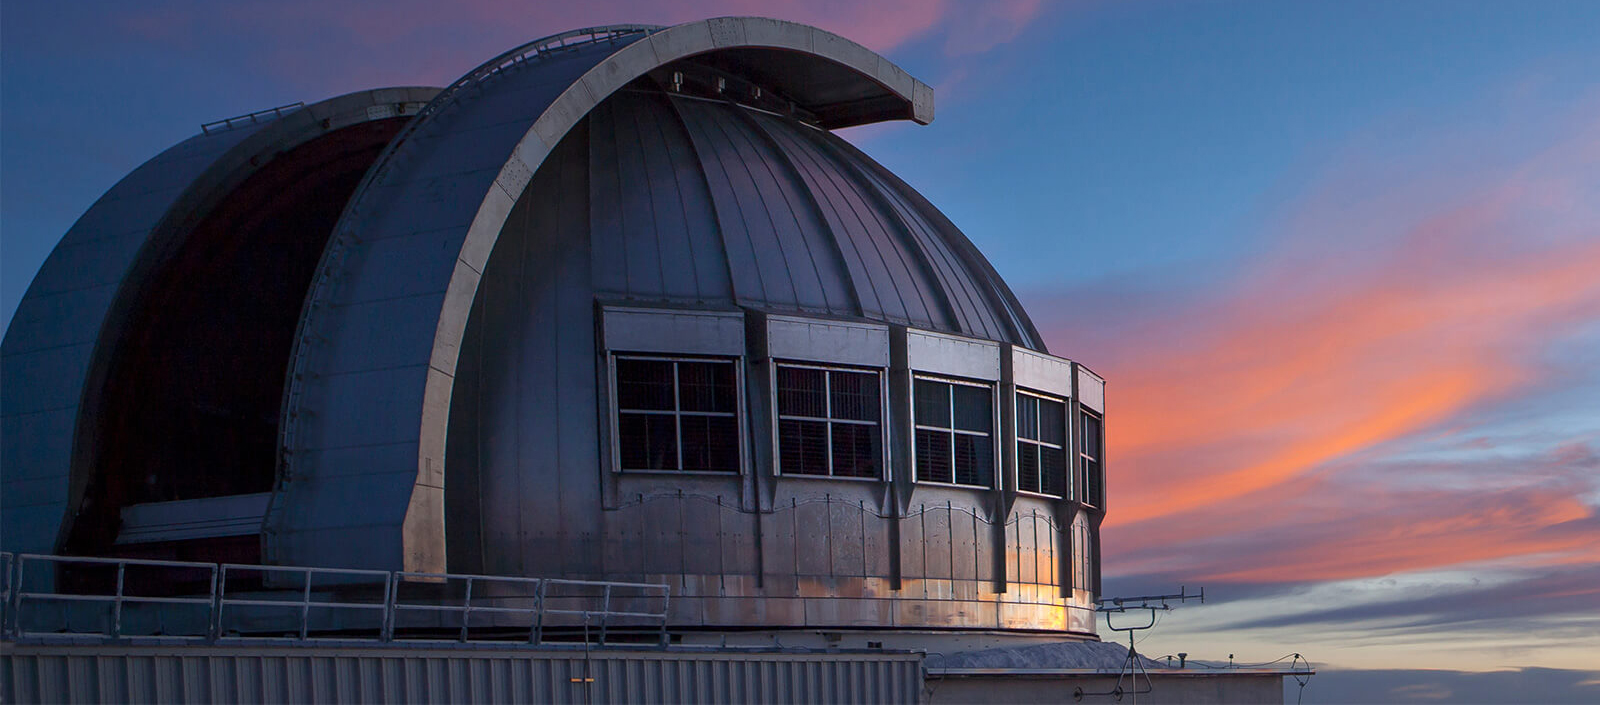 A photo of a giant telescope with a sunset in the background.